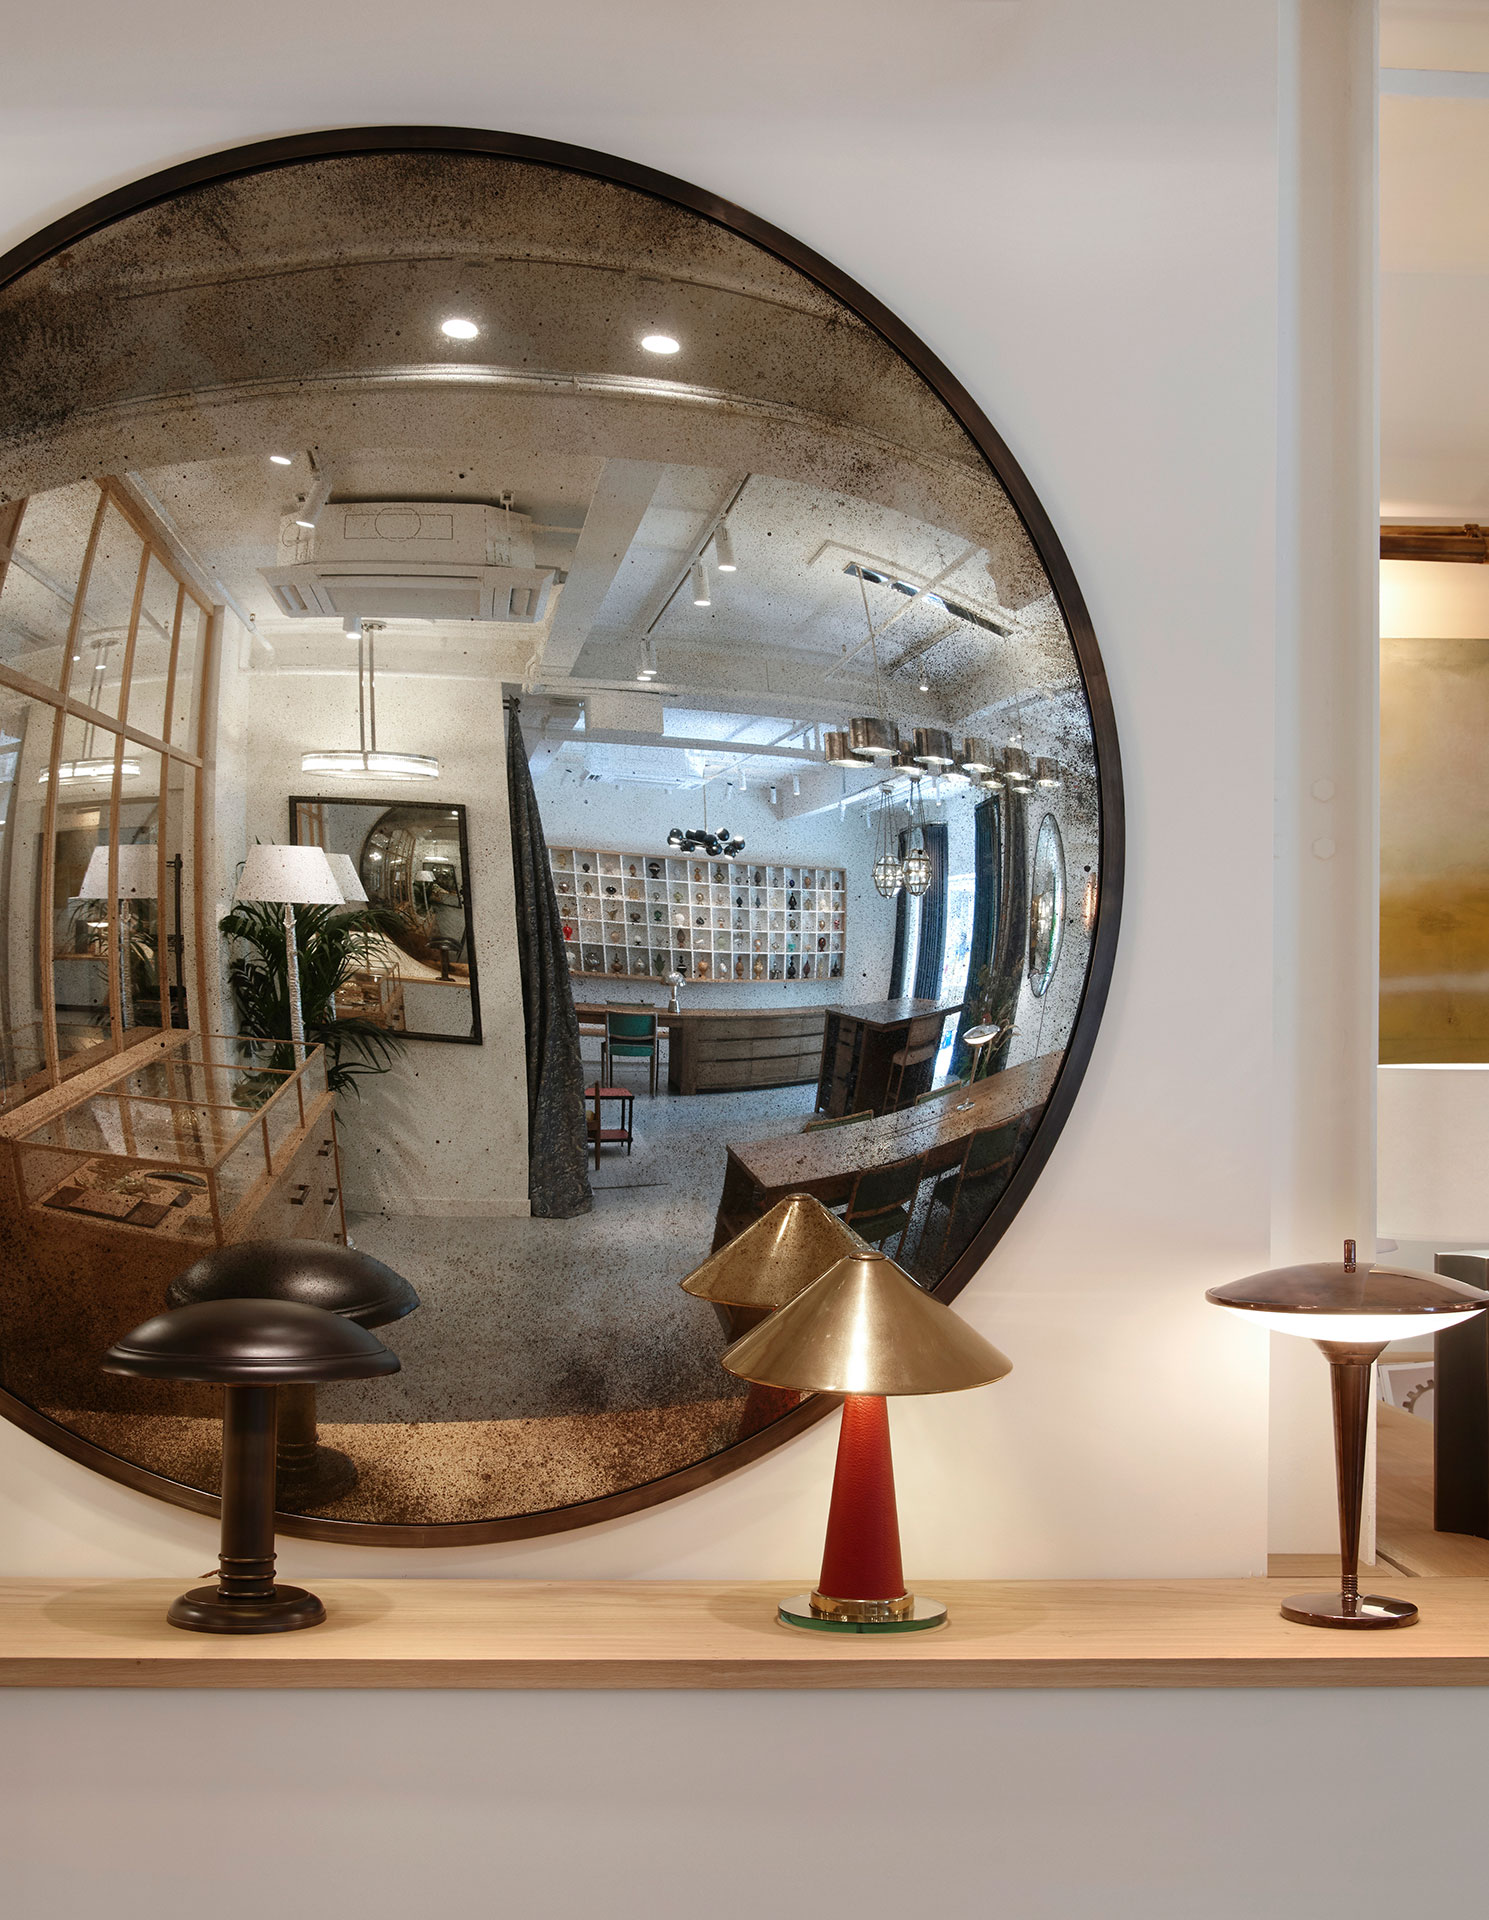 brass framed convex mirror with antiqued mirror plate at Collier Webb Design Centre Chelsea Harbour